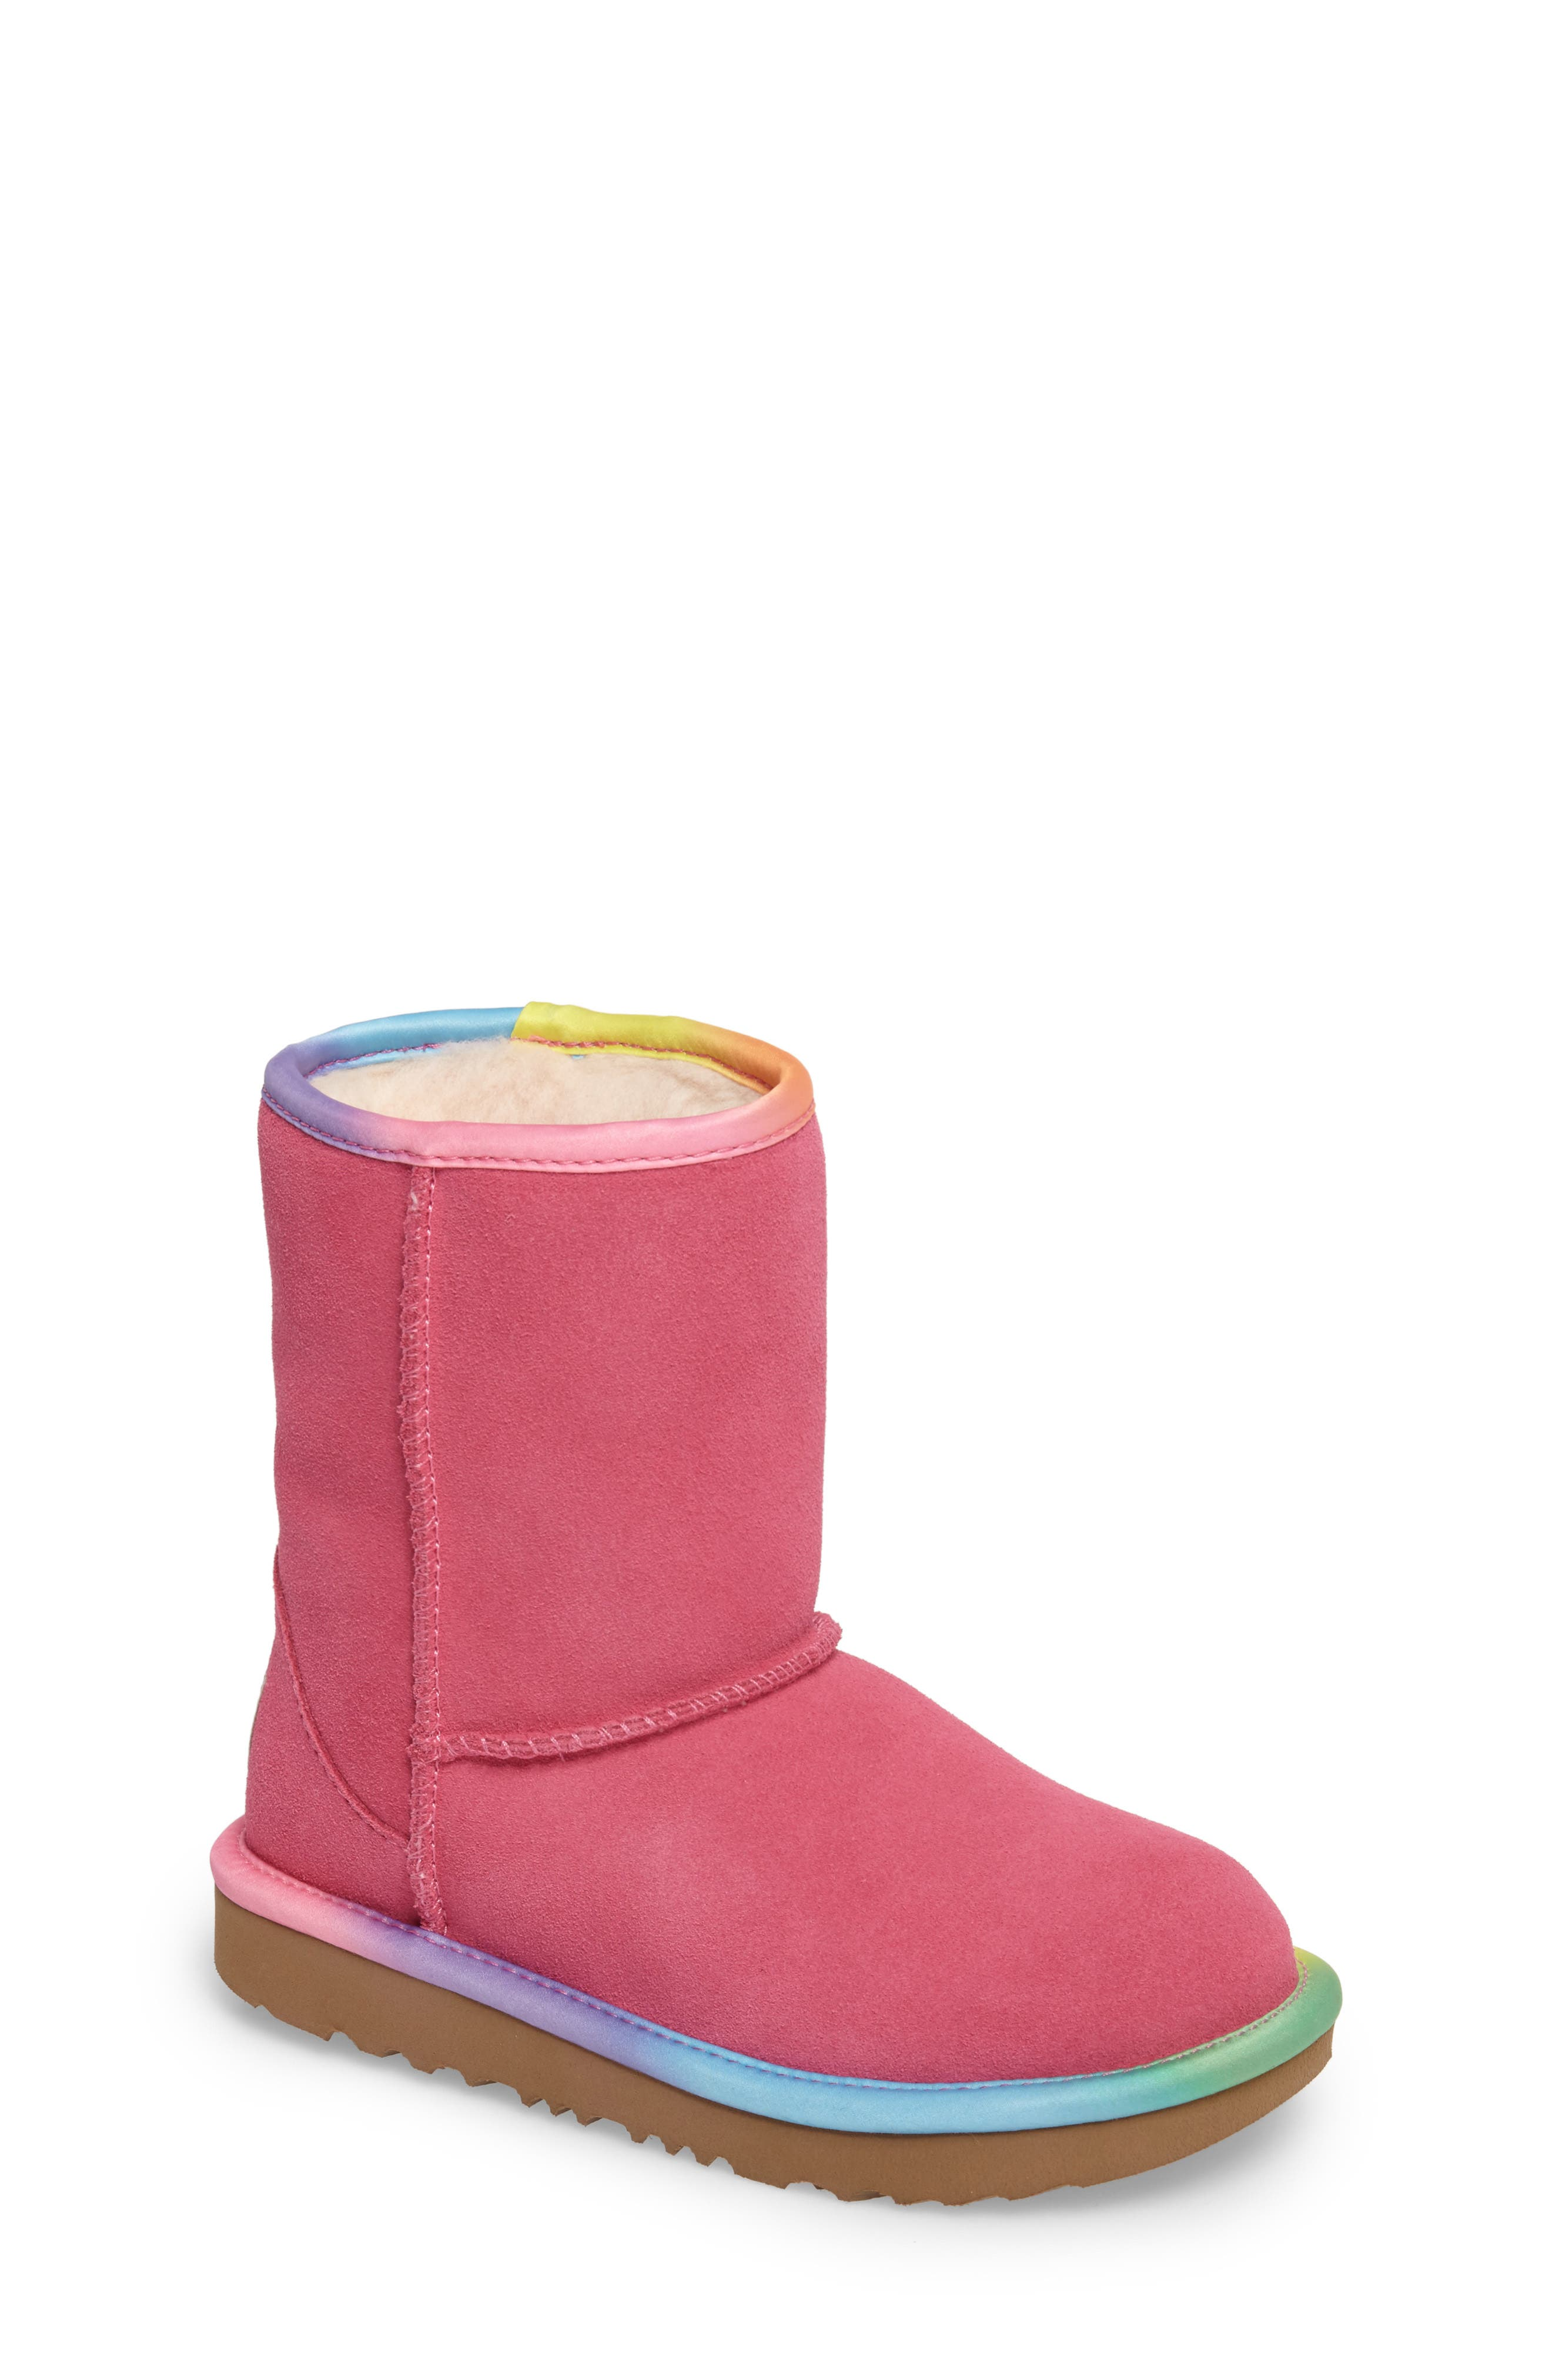 Alternate Image 1 Selected - UGG® Classic Short II Water-Resistant Genuine Shearling Rainbow Boot (Walker, Toddler, Little Kid & Big Kid)